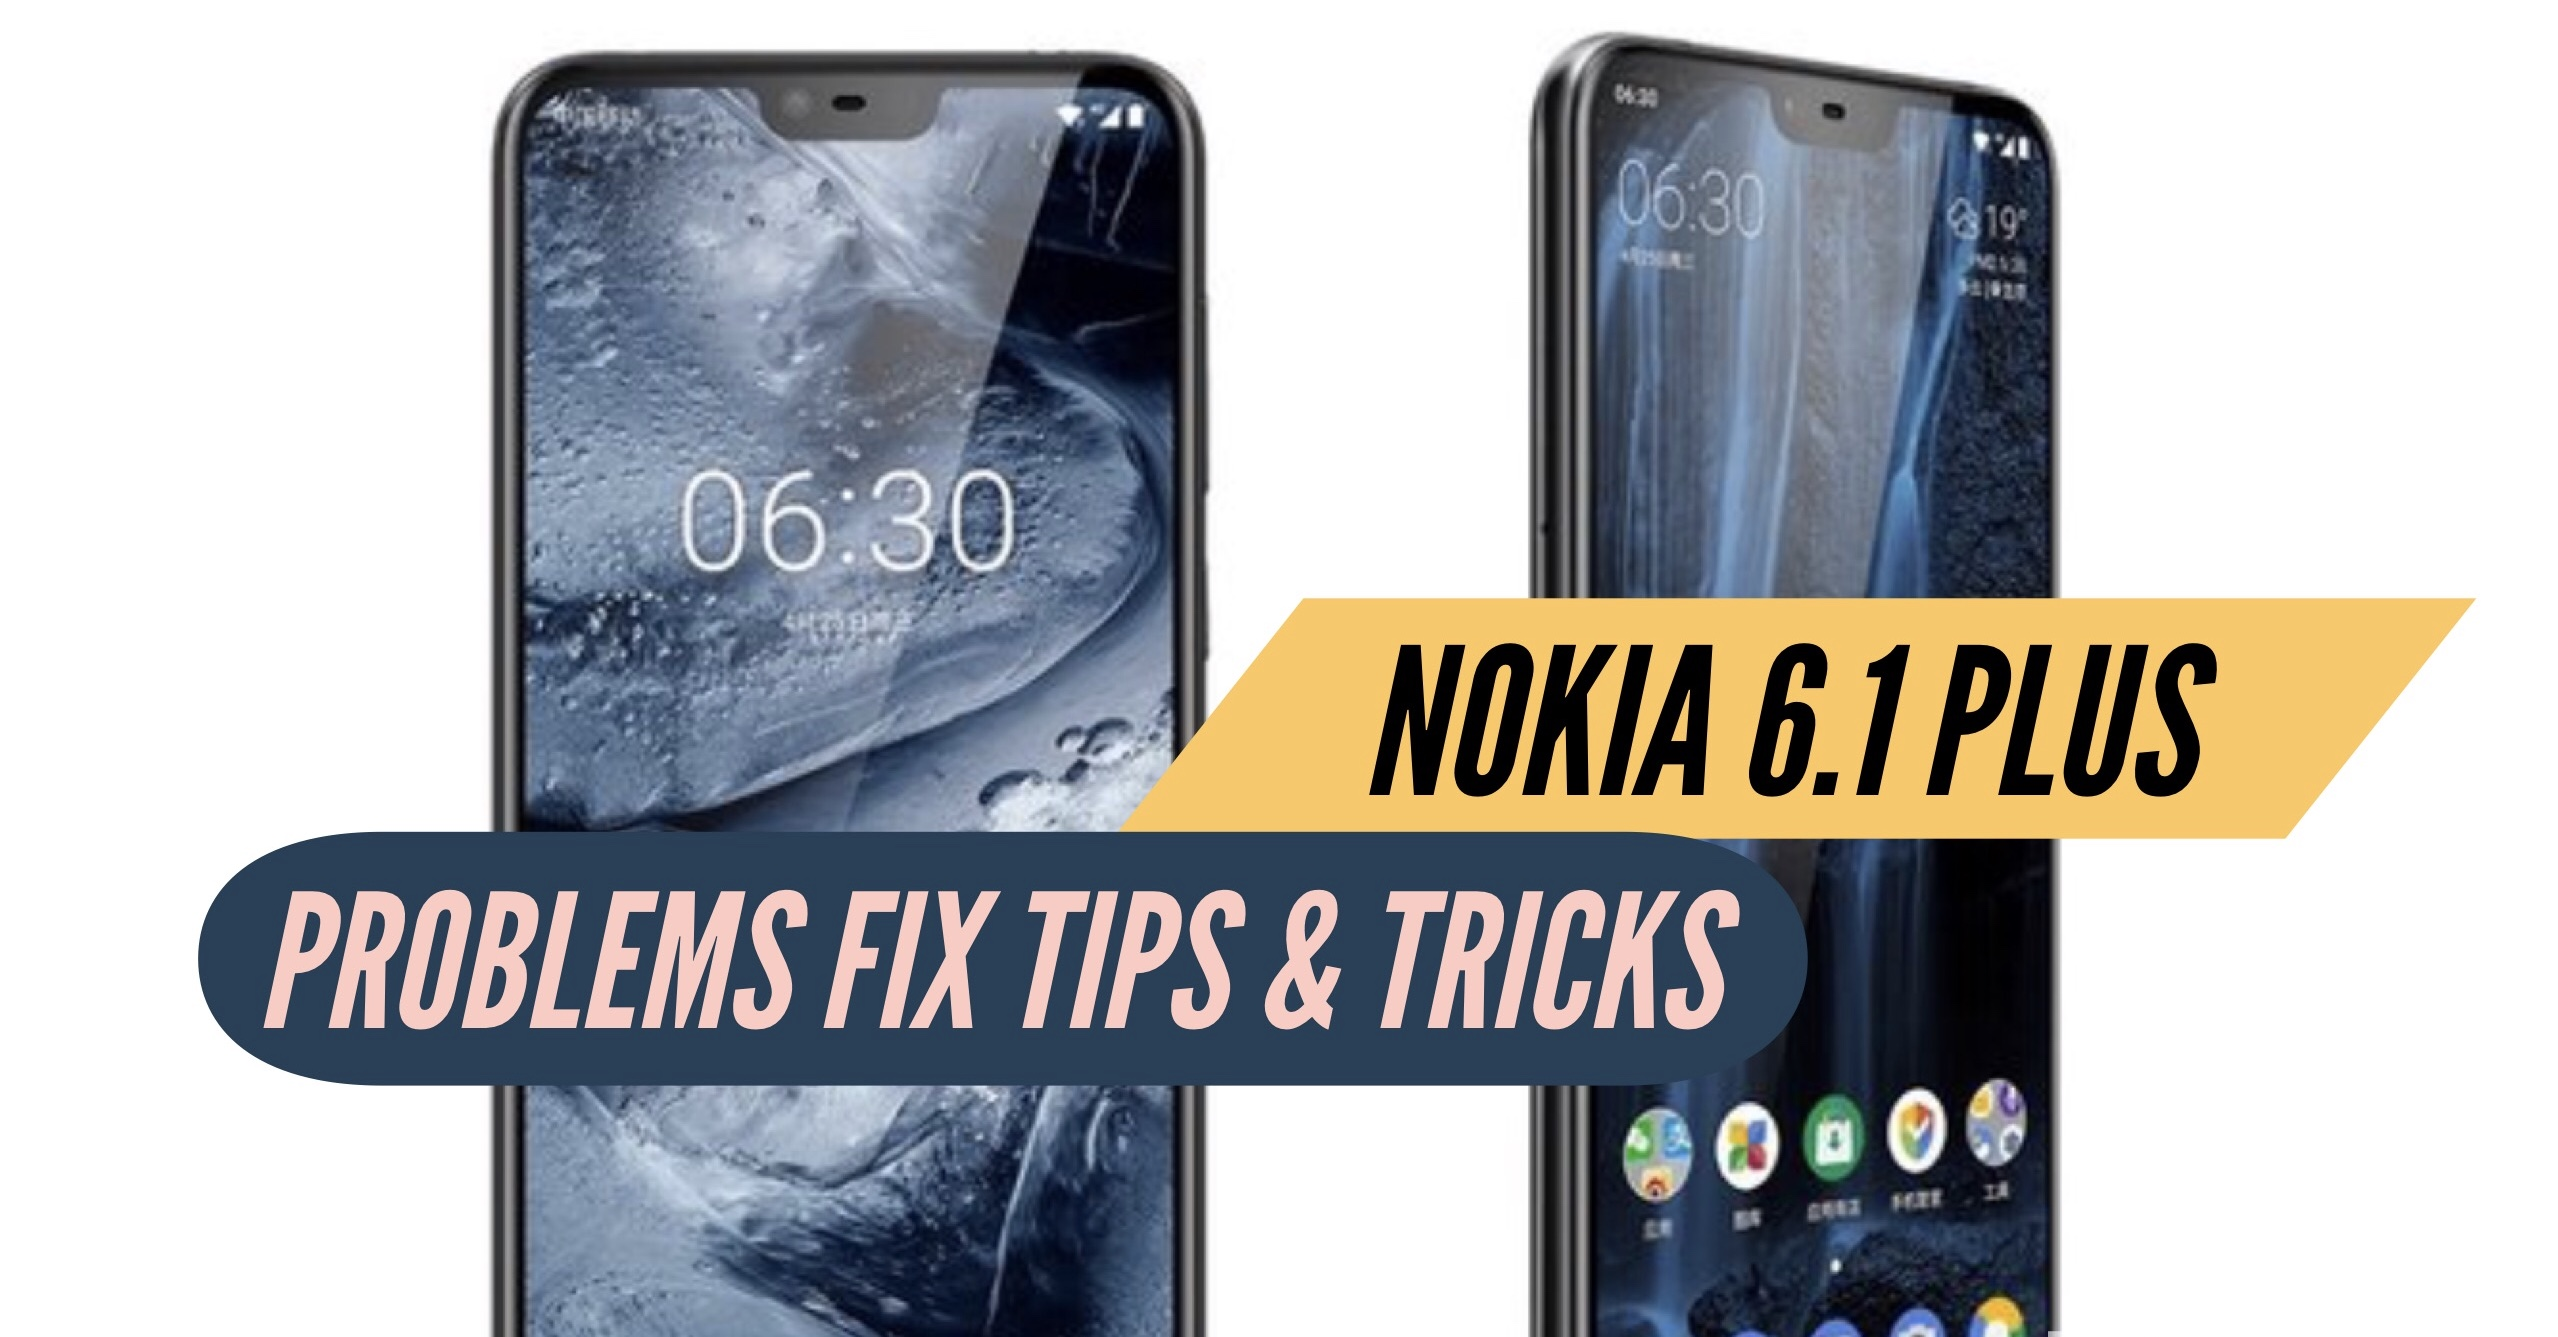 Nokia 6 1 Plus Most Common Problems & Issues + Solution Fix